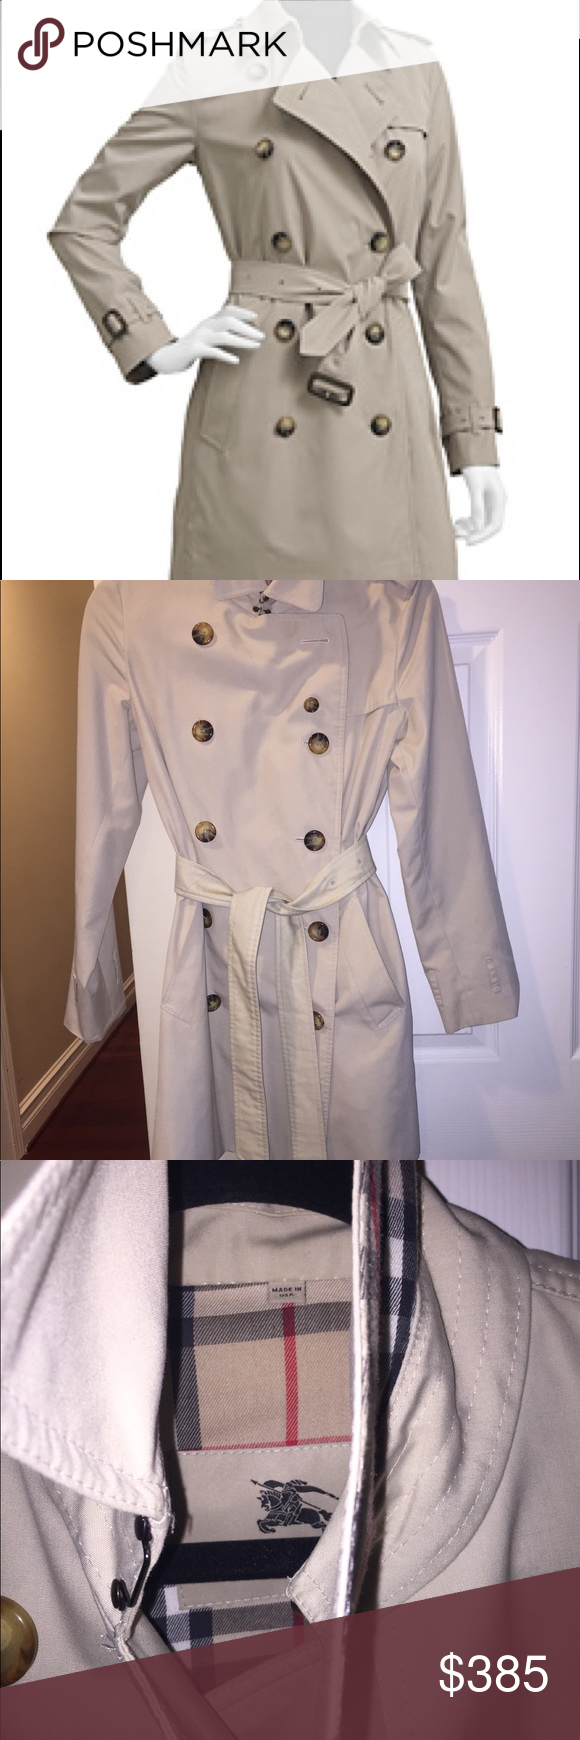 3898eceaebed Trench Has Burberry Coat Harbourne 8 It vfq5fn